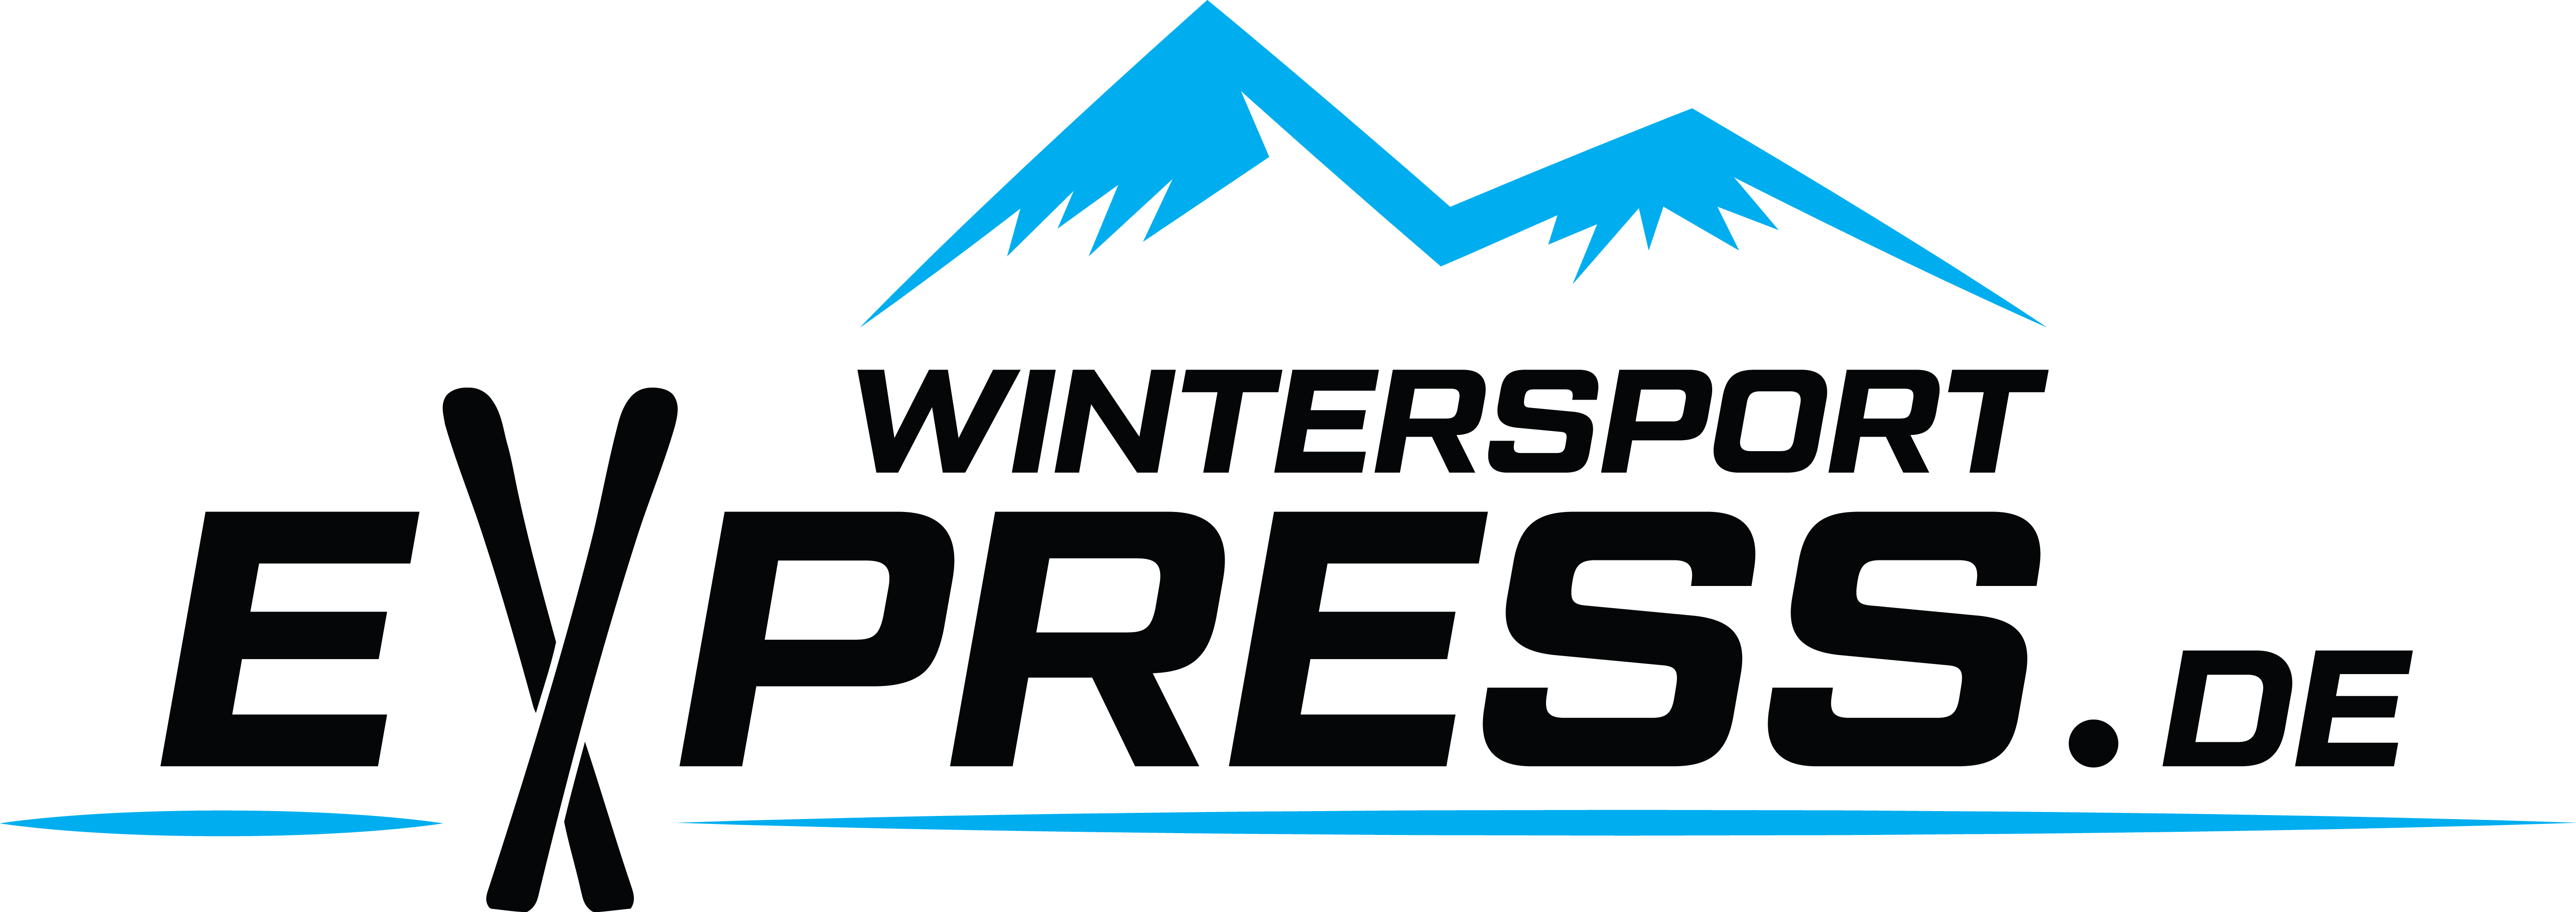 WintersportExpress.de-Logo